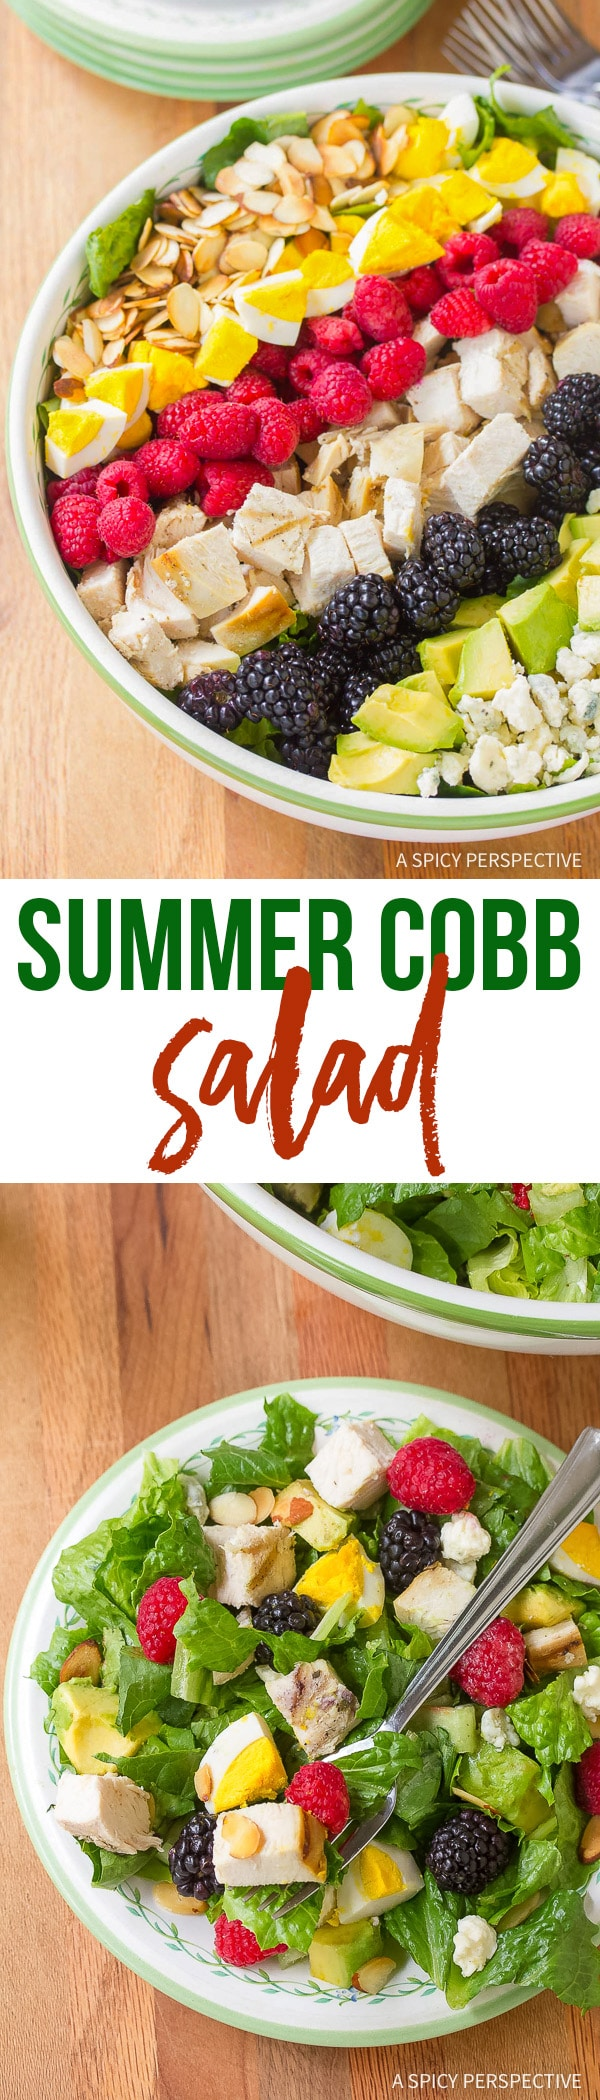 Fresh Summer Cobb Salad Recipe with Creamy Garlic Lime Vinaigrette